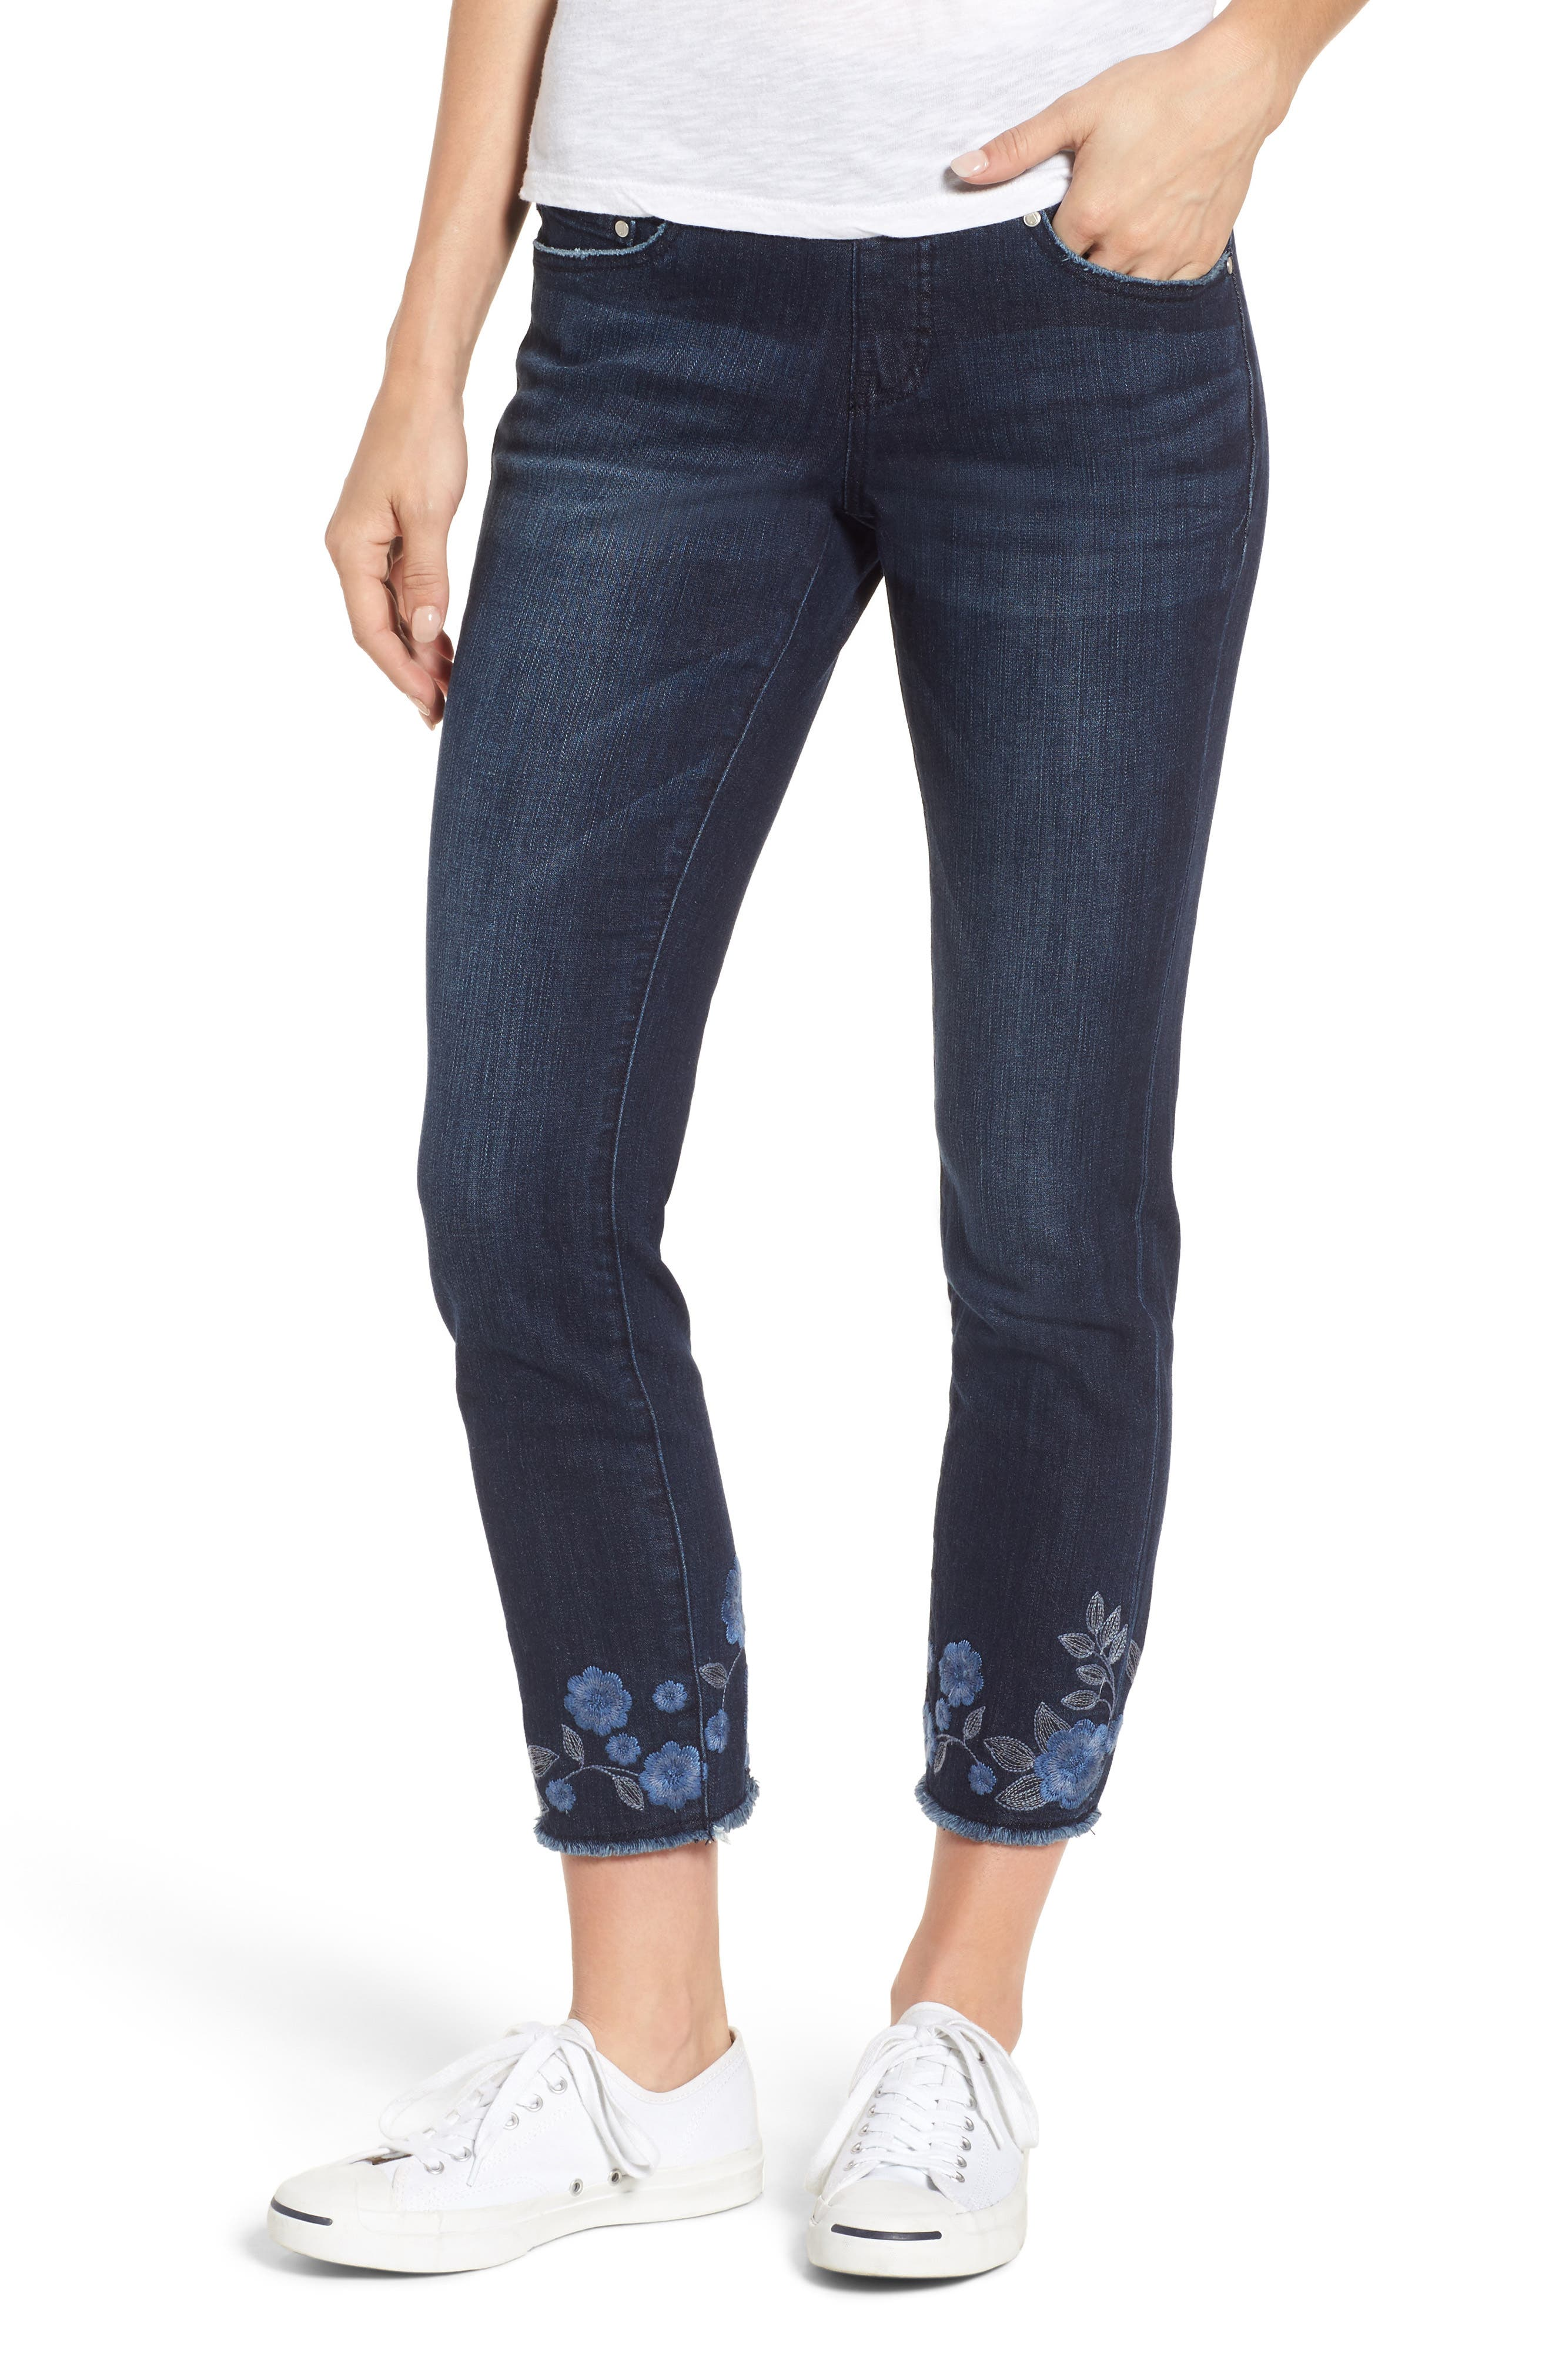 Amelia Embroidered Slim Ankle Jeans,                             Main thumbnail 1, color,                             Meteor Wash